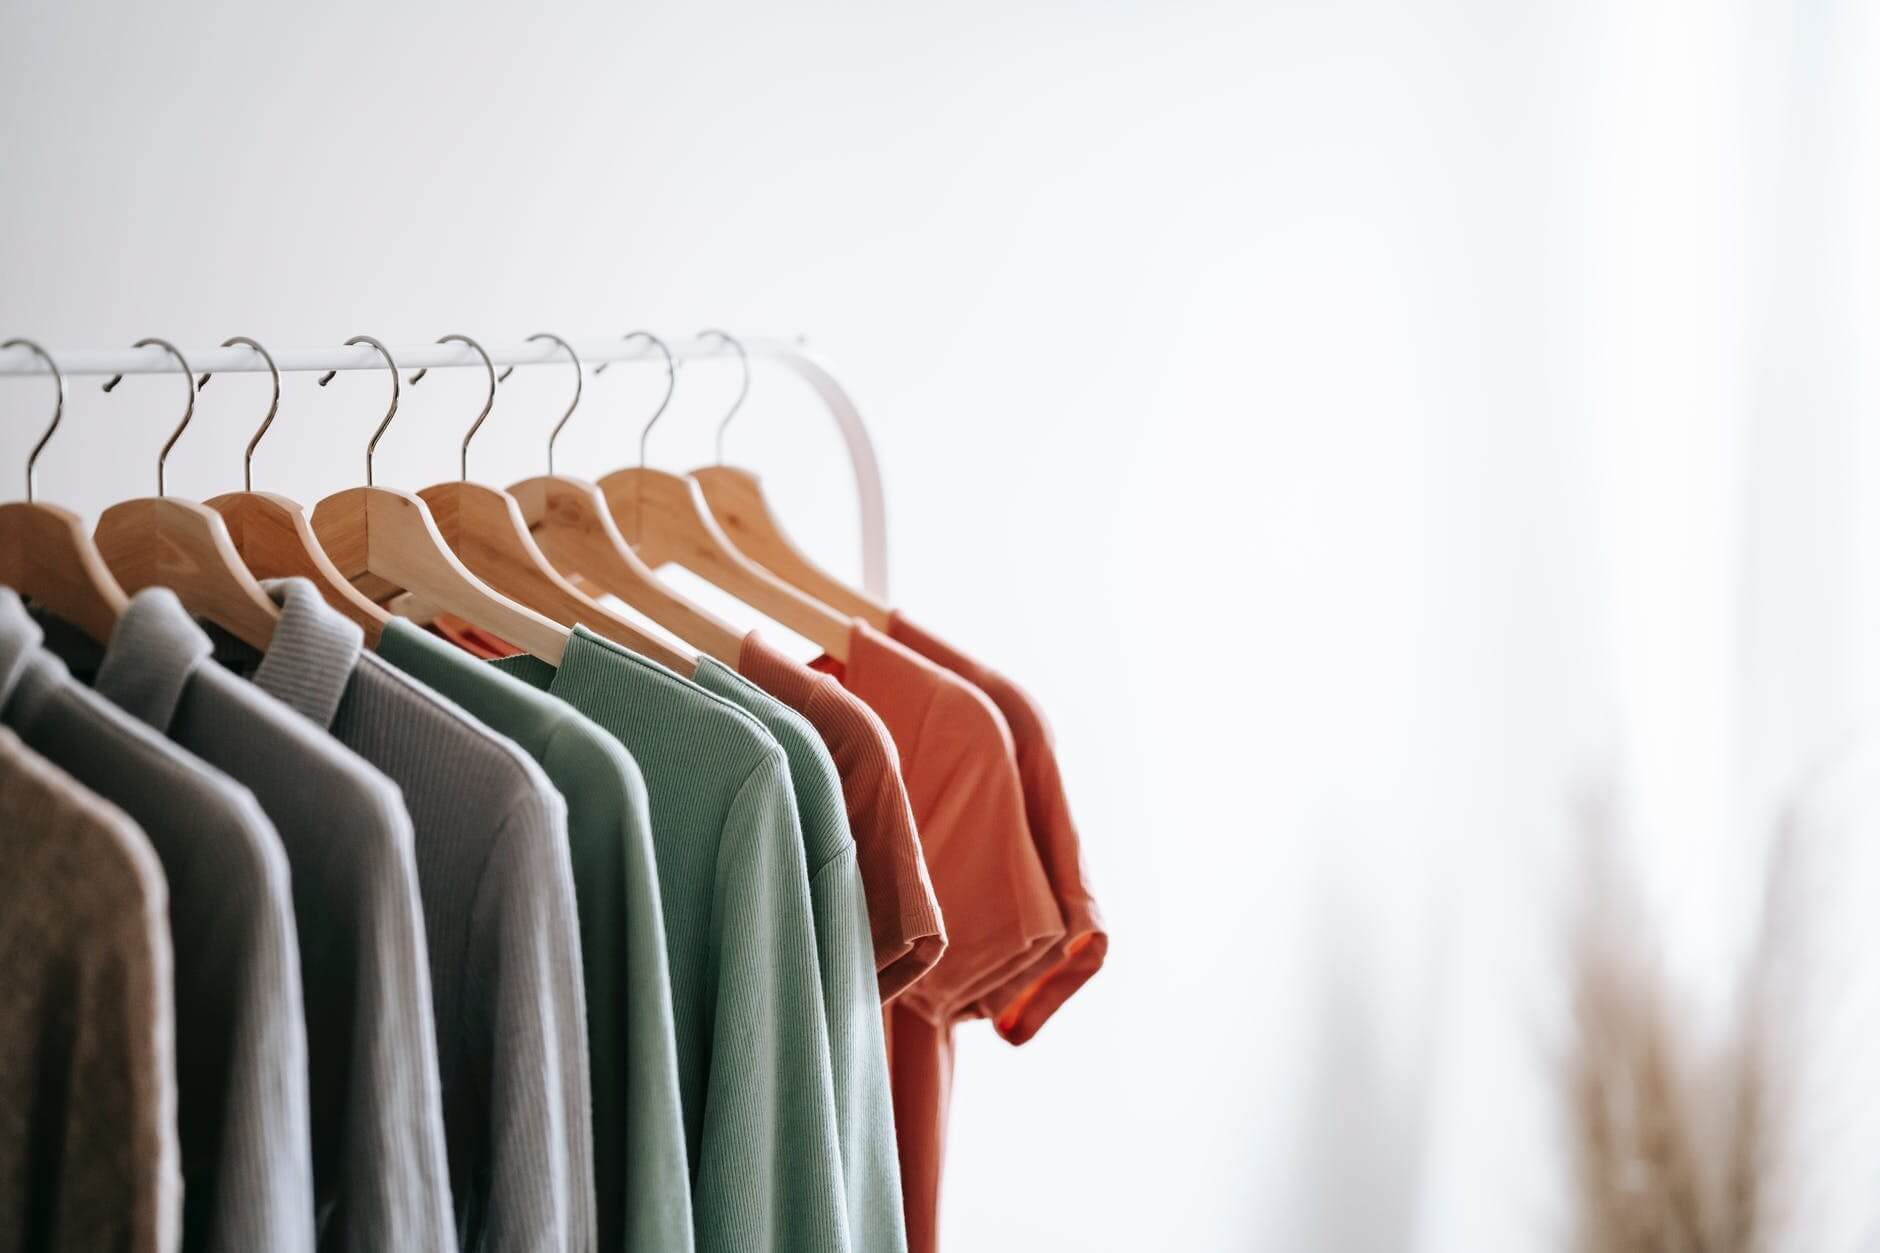 A clothing rack with T-shirts on it